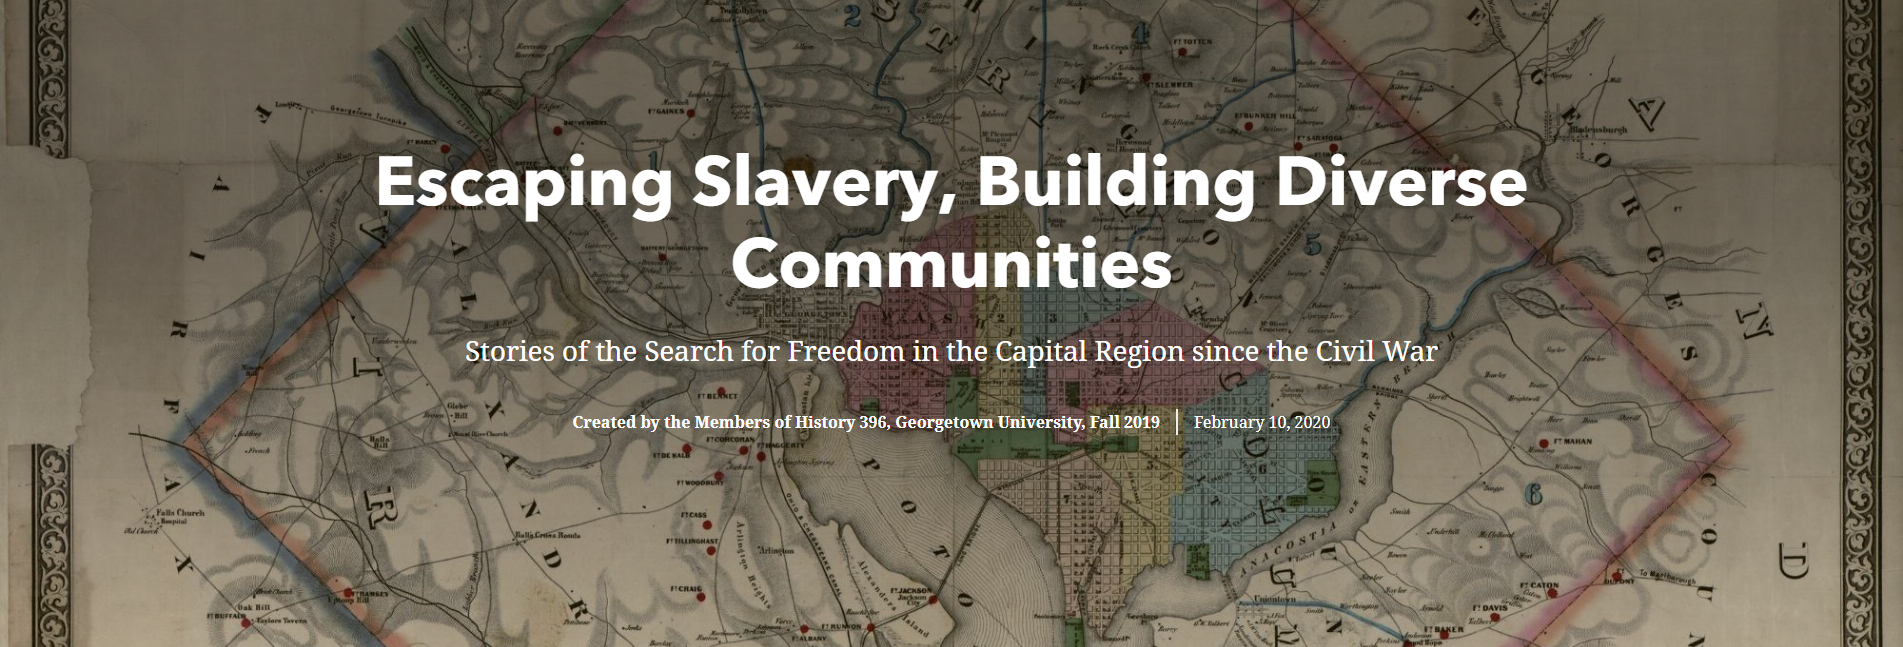 Escaping Slavery Building Diverse Communities Created by the Members of History 396 Georgetown University Fall 2019